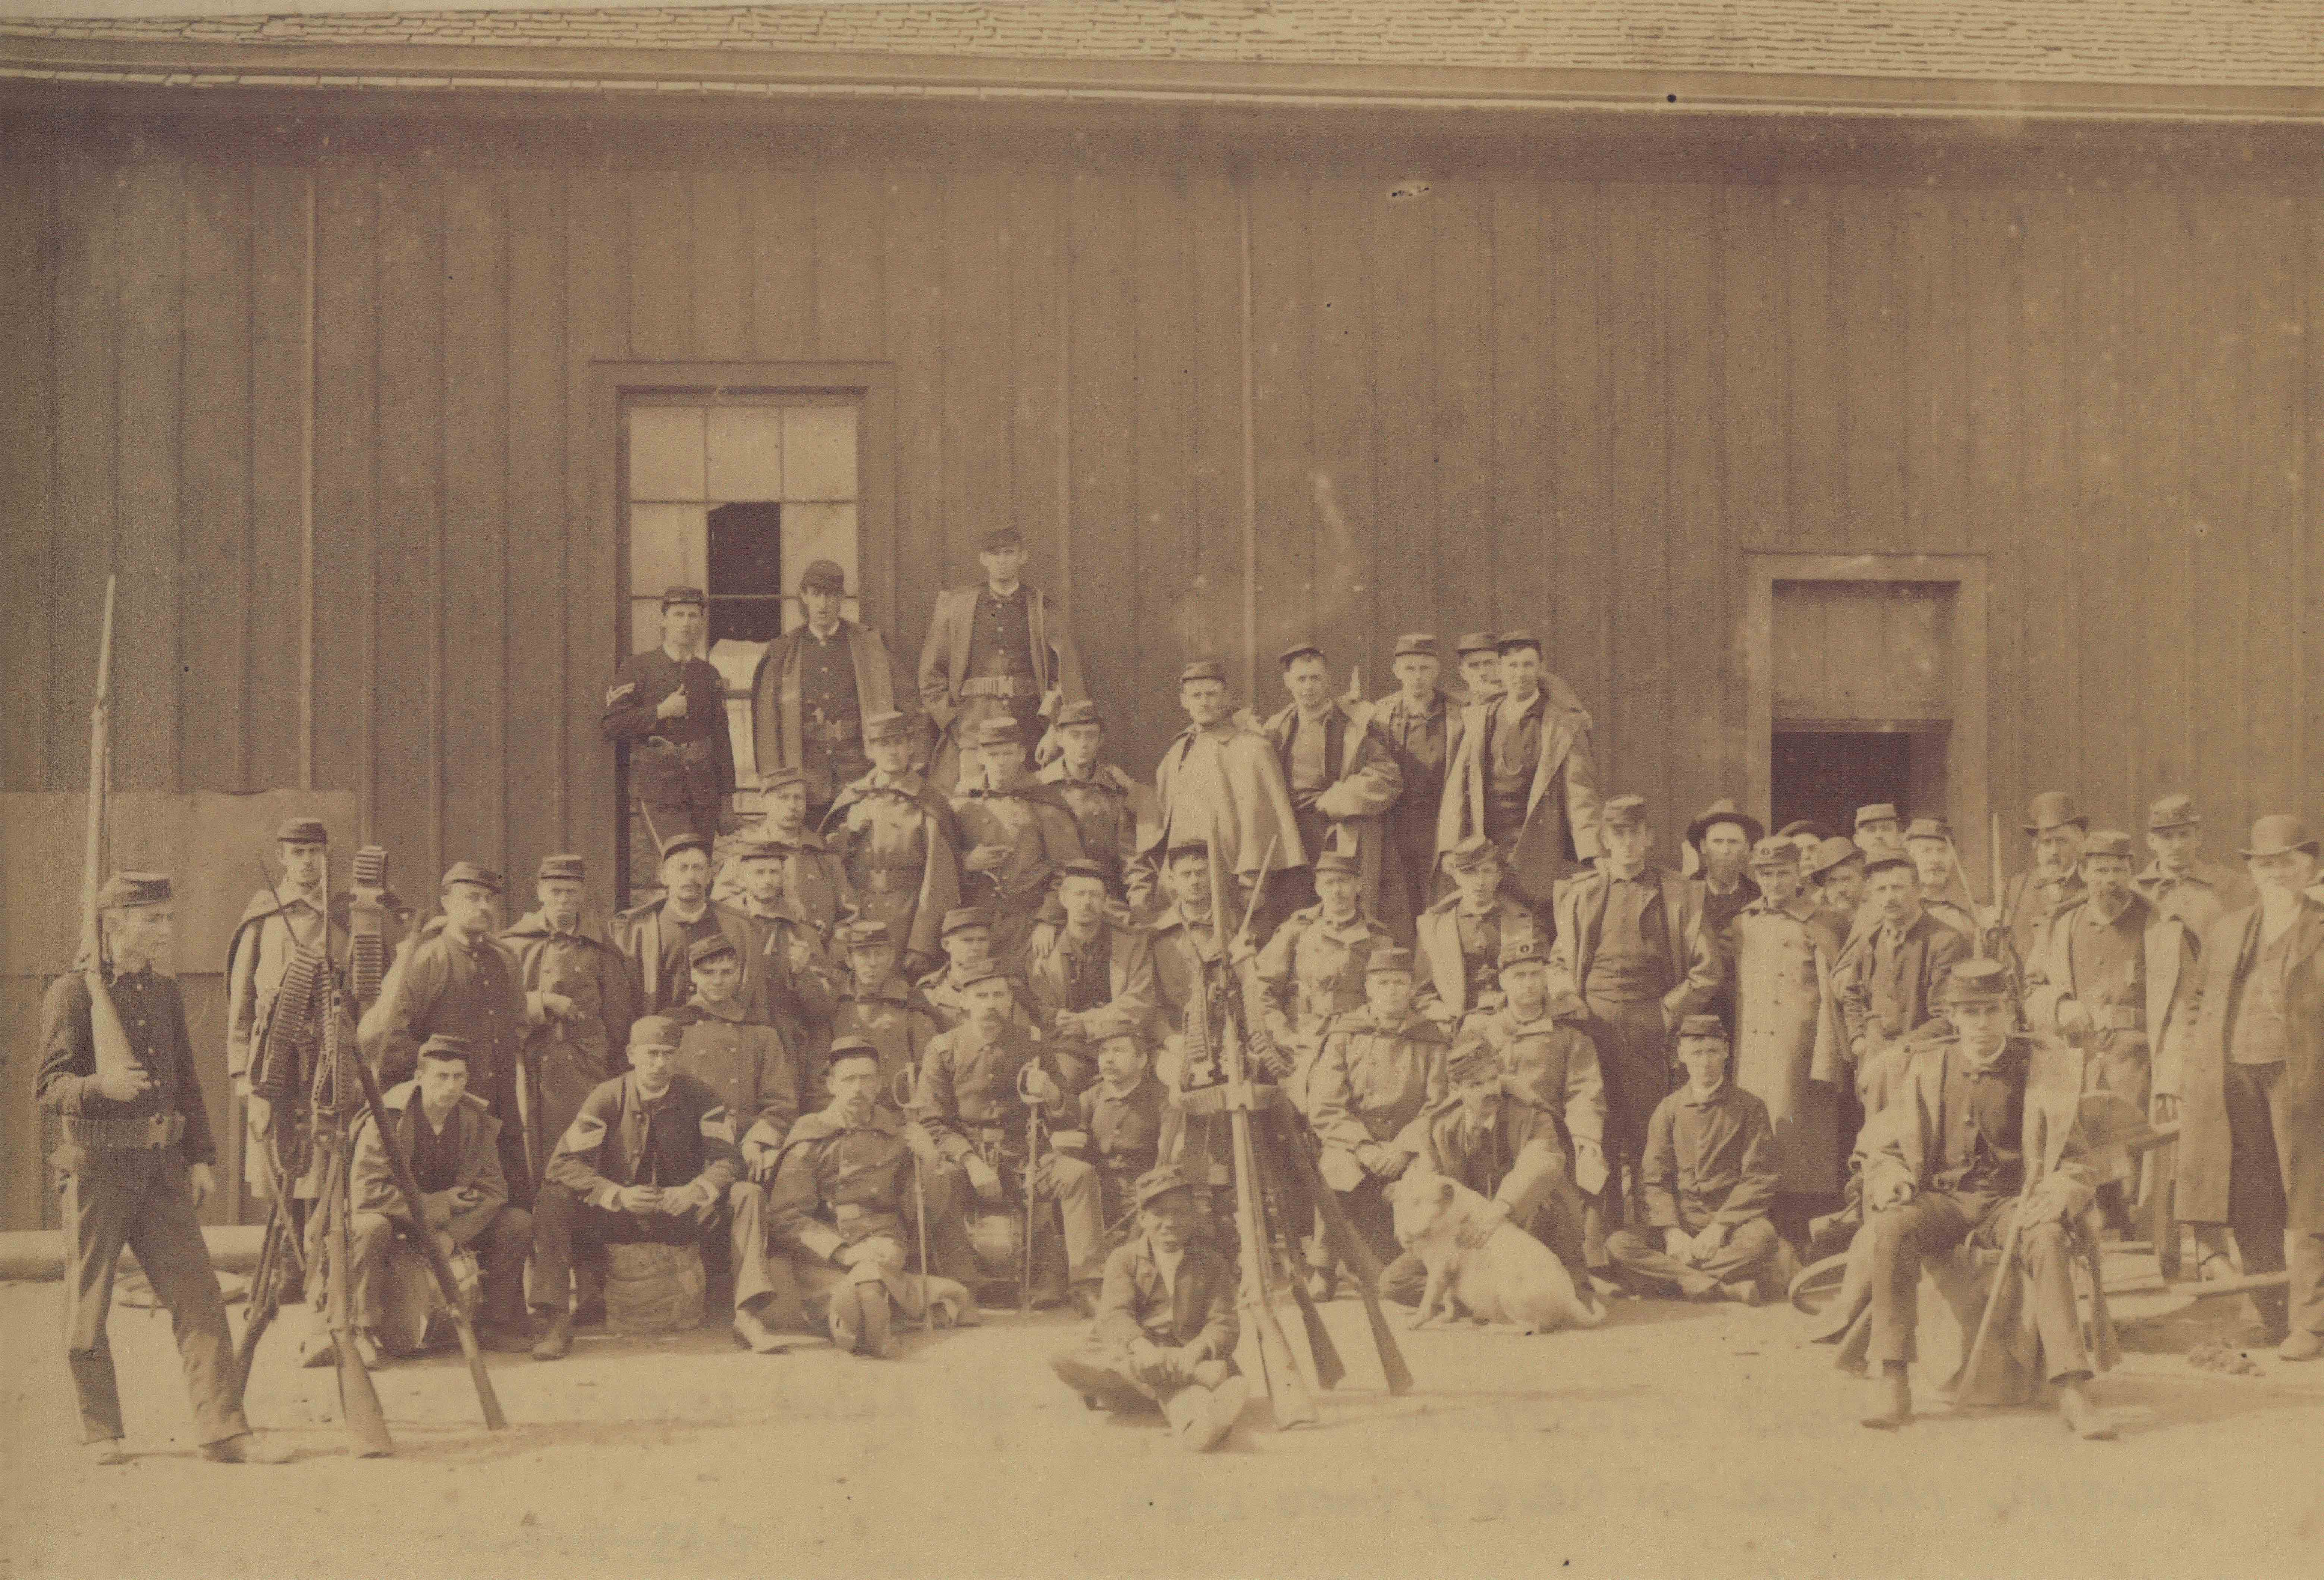 <table class=&quot;lightbox&quot;><tr><td colspan=2 class=&quot;lightbox-title&quot;>Rolling Mill Strike Militia</td></tr><tr><td colspan=2 class=&quot;lightbox-caption&quot;>A group of armed militia men called to oppose the 1886 workers' strike pose for a photograph. </td></tr><tr><td colspan=2 class=&quot;lightbox-spacer&quot;></td></tr><tr class=&quot;lightbox-detail&quot;><td class=&quot;cell-title&quot;>Source: </td><td class=&quot;cell-value&quot;>From the Historic Photo Collection of the Milwaukee Public Library. Reprinted with permission. <br /><a href=&quot;http://content.mpl.org/cdm/singleitem/collection/HstoricPho/id/2681/rec/19&quot; target=&quot;_blank&quot;>Milwaukee Public Library</a></td></tr><tr class=&quot;filler-row&quot;><td colspan=2>&nbsp;</td></tr></table>